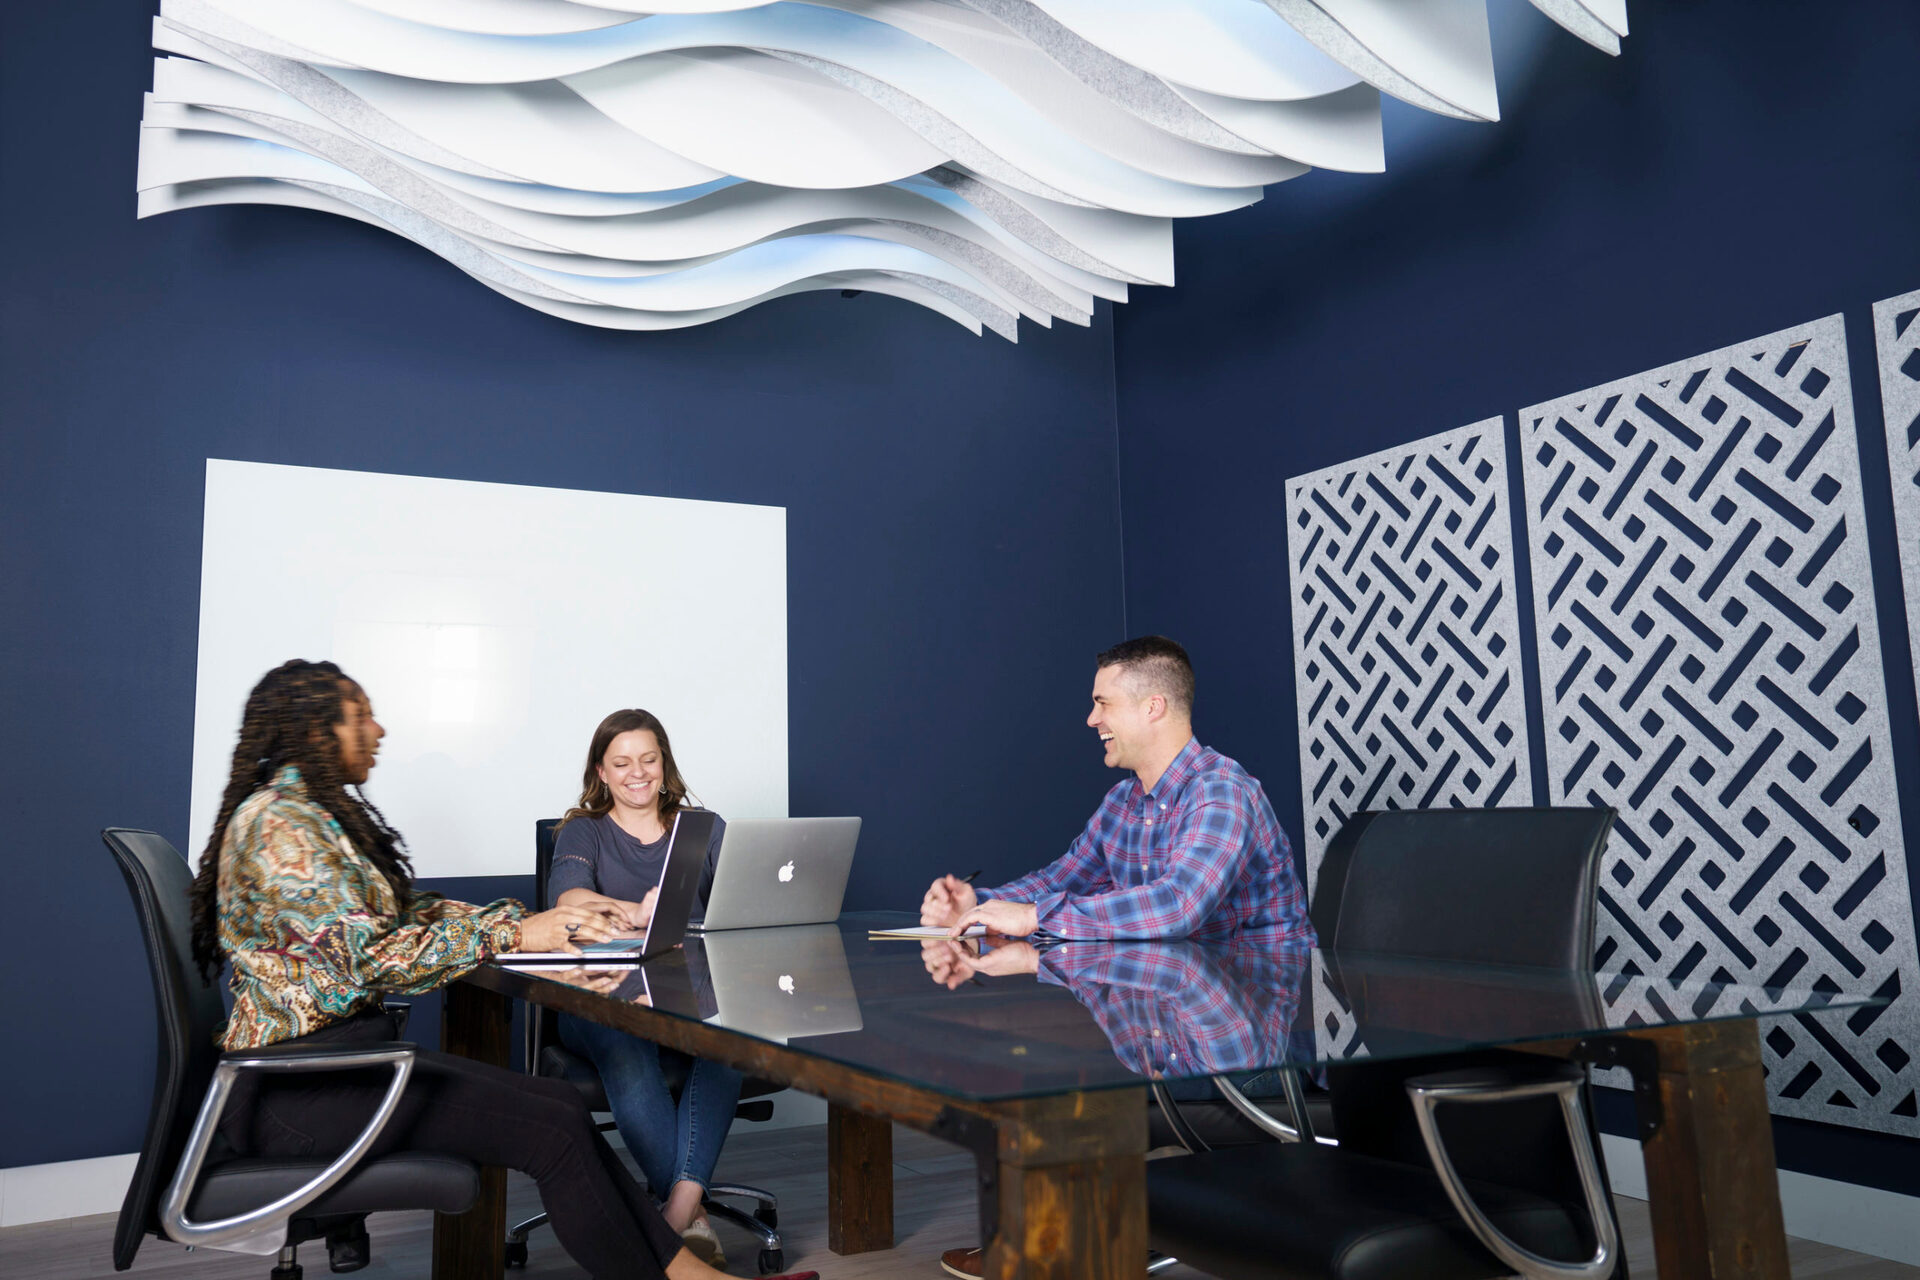 In this conference room, the Londe Ceiling Baffle and Mur Mounted Wall Panels provide a stylish aesthetic while helping reduce reverberation and echo within the room.